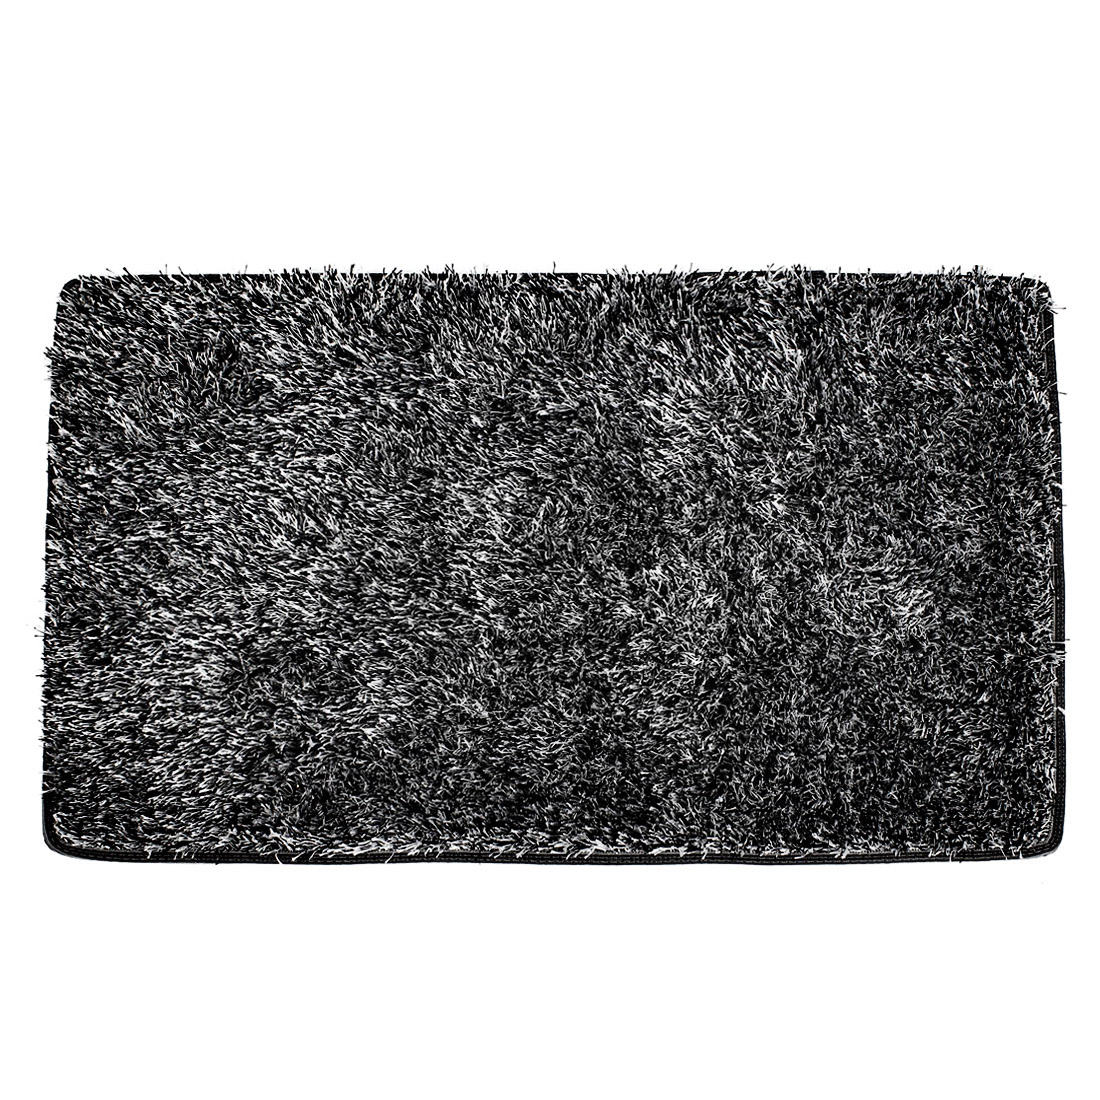 80cm x 50cm Black White Plush Sofa Floor Mat Tea Table Area Rug Carpet